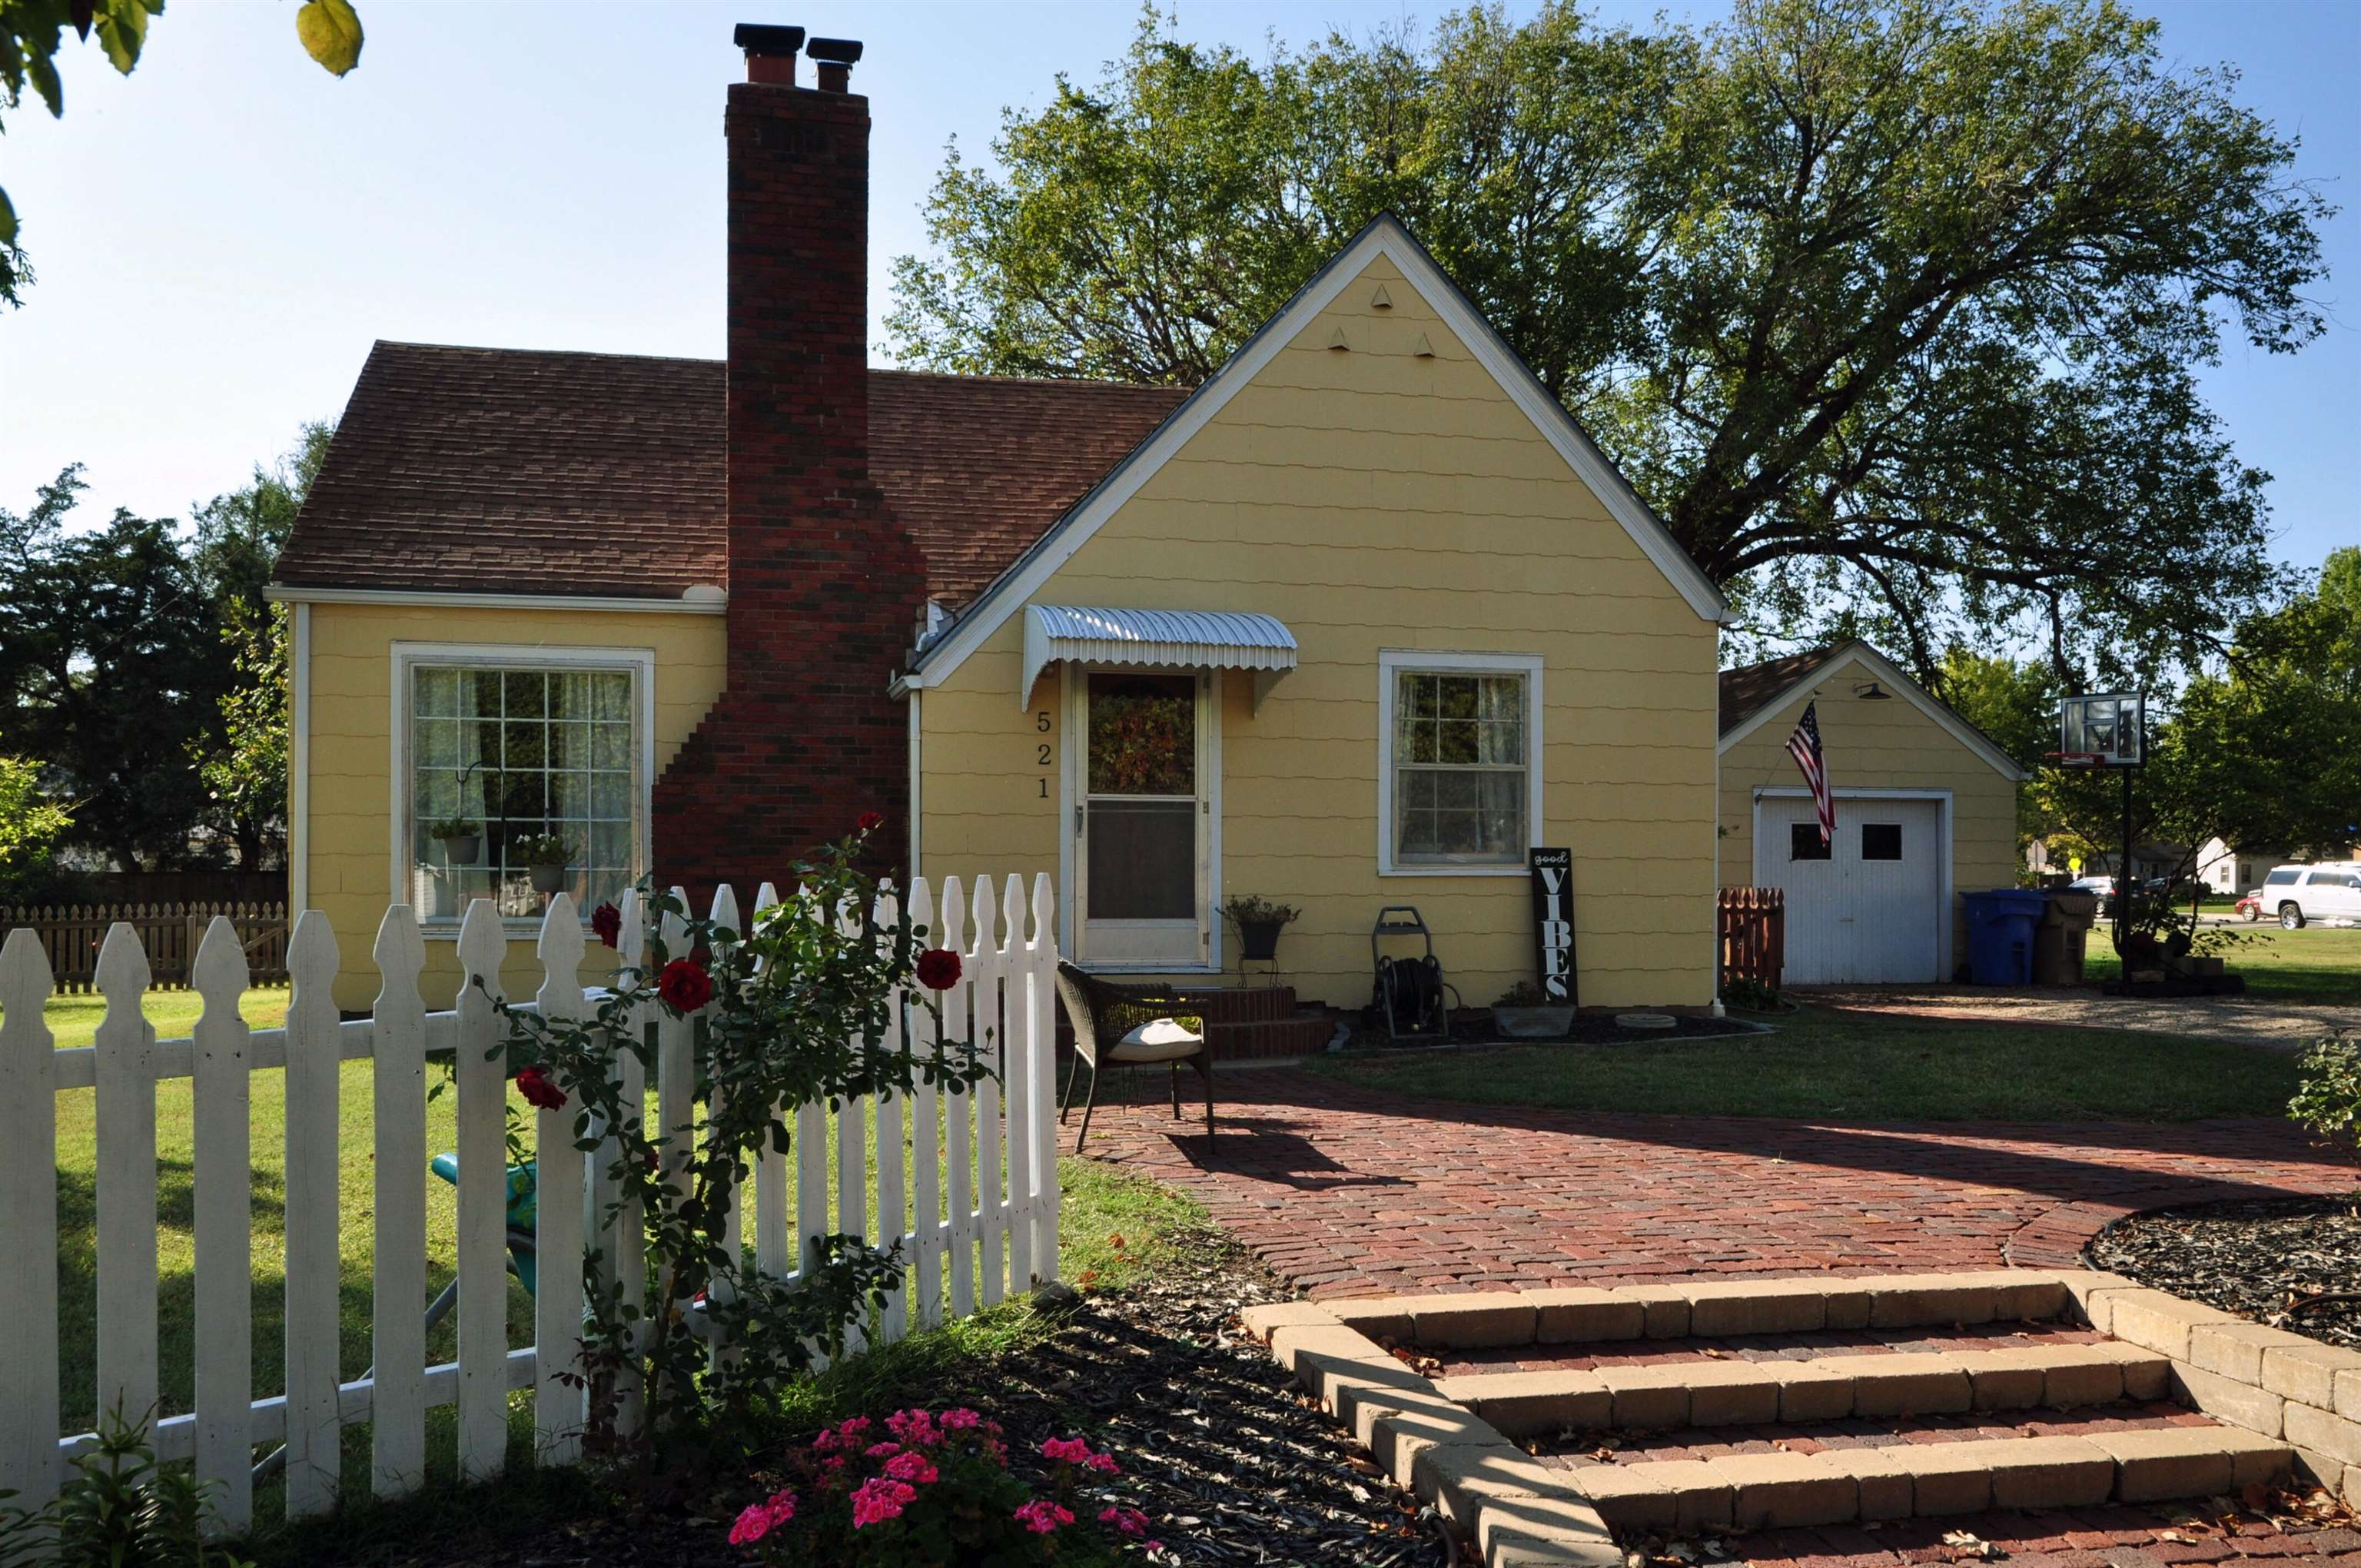 Come and check out this adorable 2 bedroom and 1 bath home on a corner lot in the heart of Cheney. T